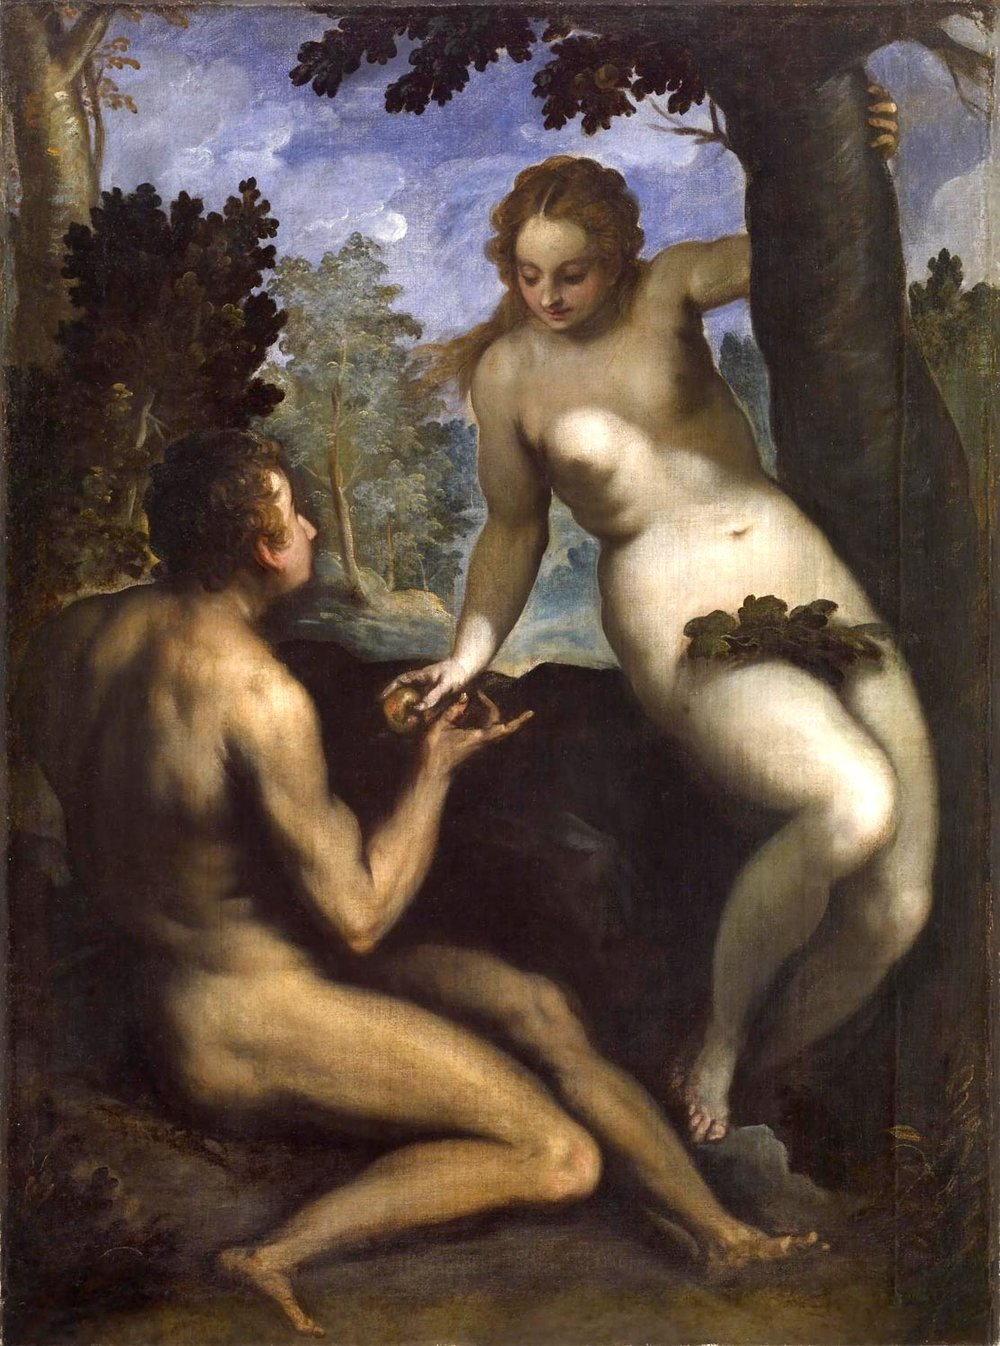 The Fall of Man, Pietro Mera, ca. 1571